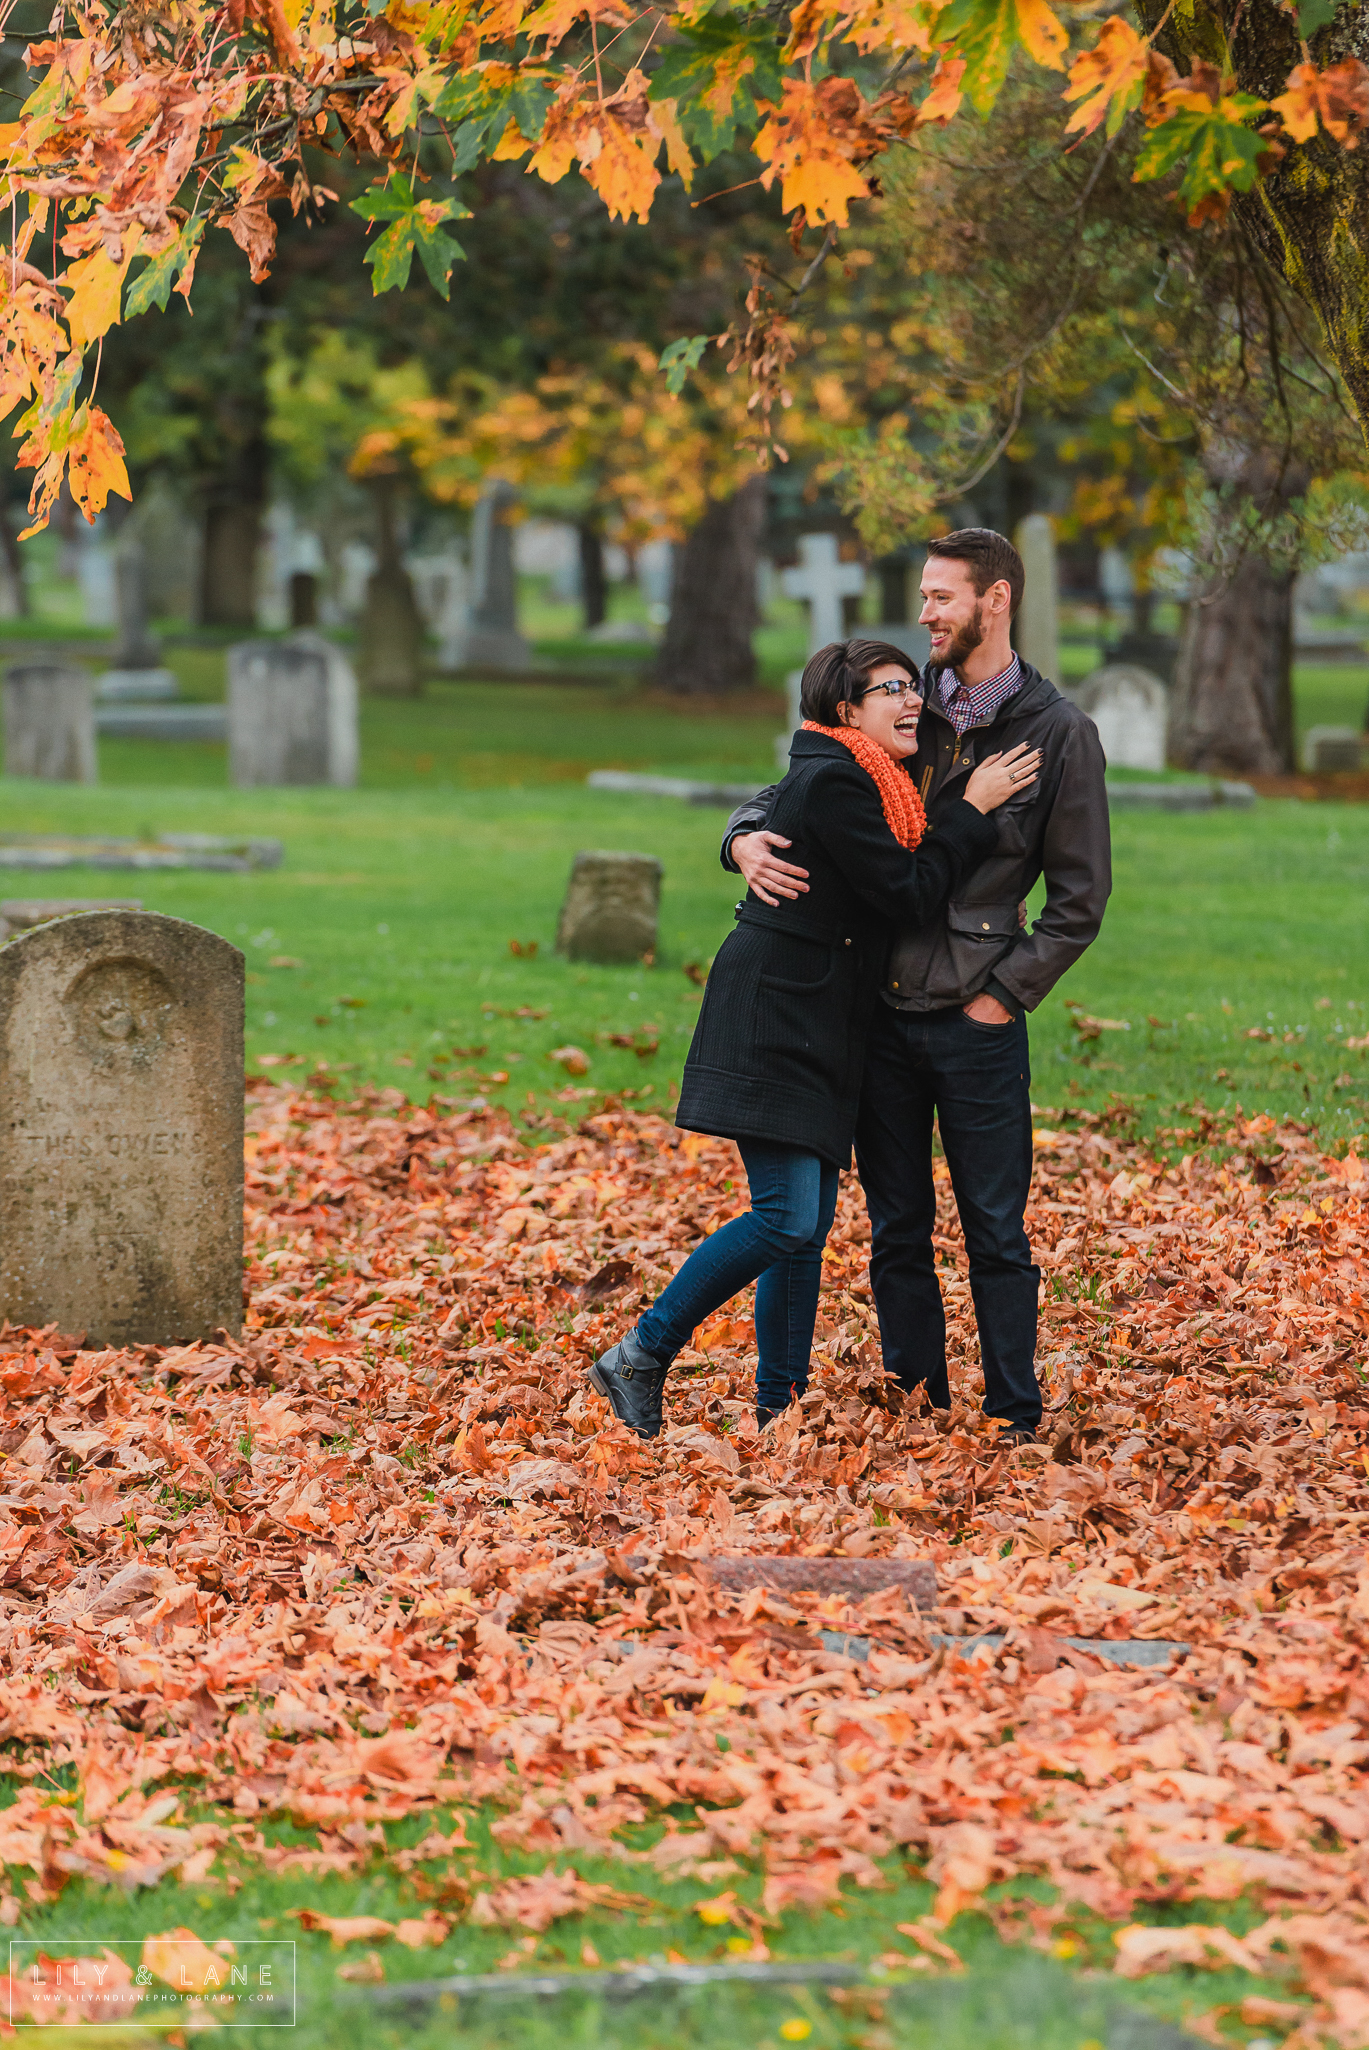 Nicola_Reiersen_Photography_Cemetery_Engagement_Session.jpg